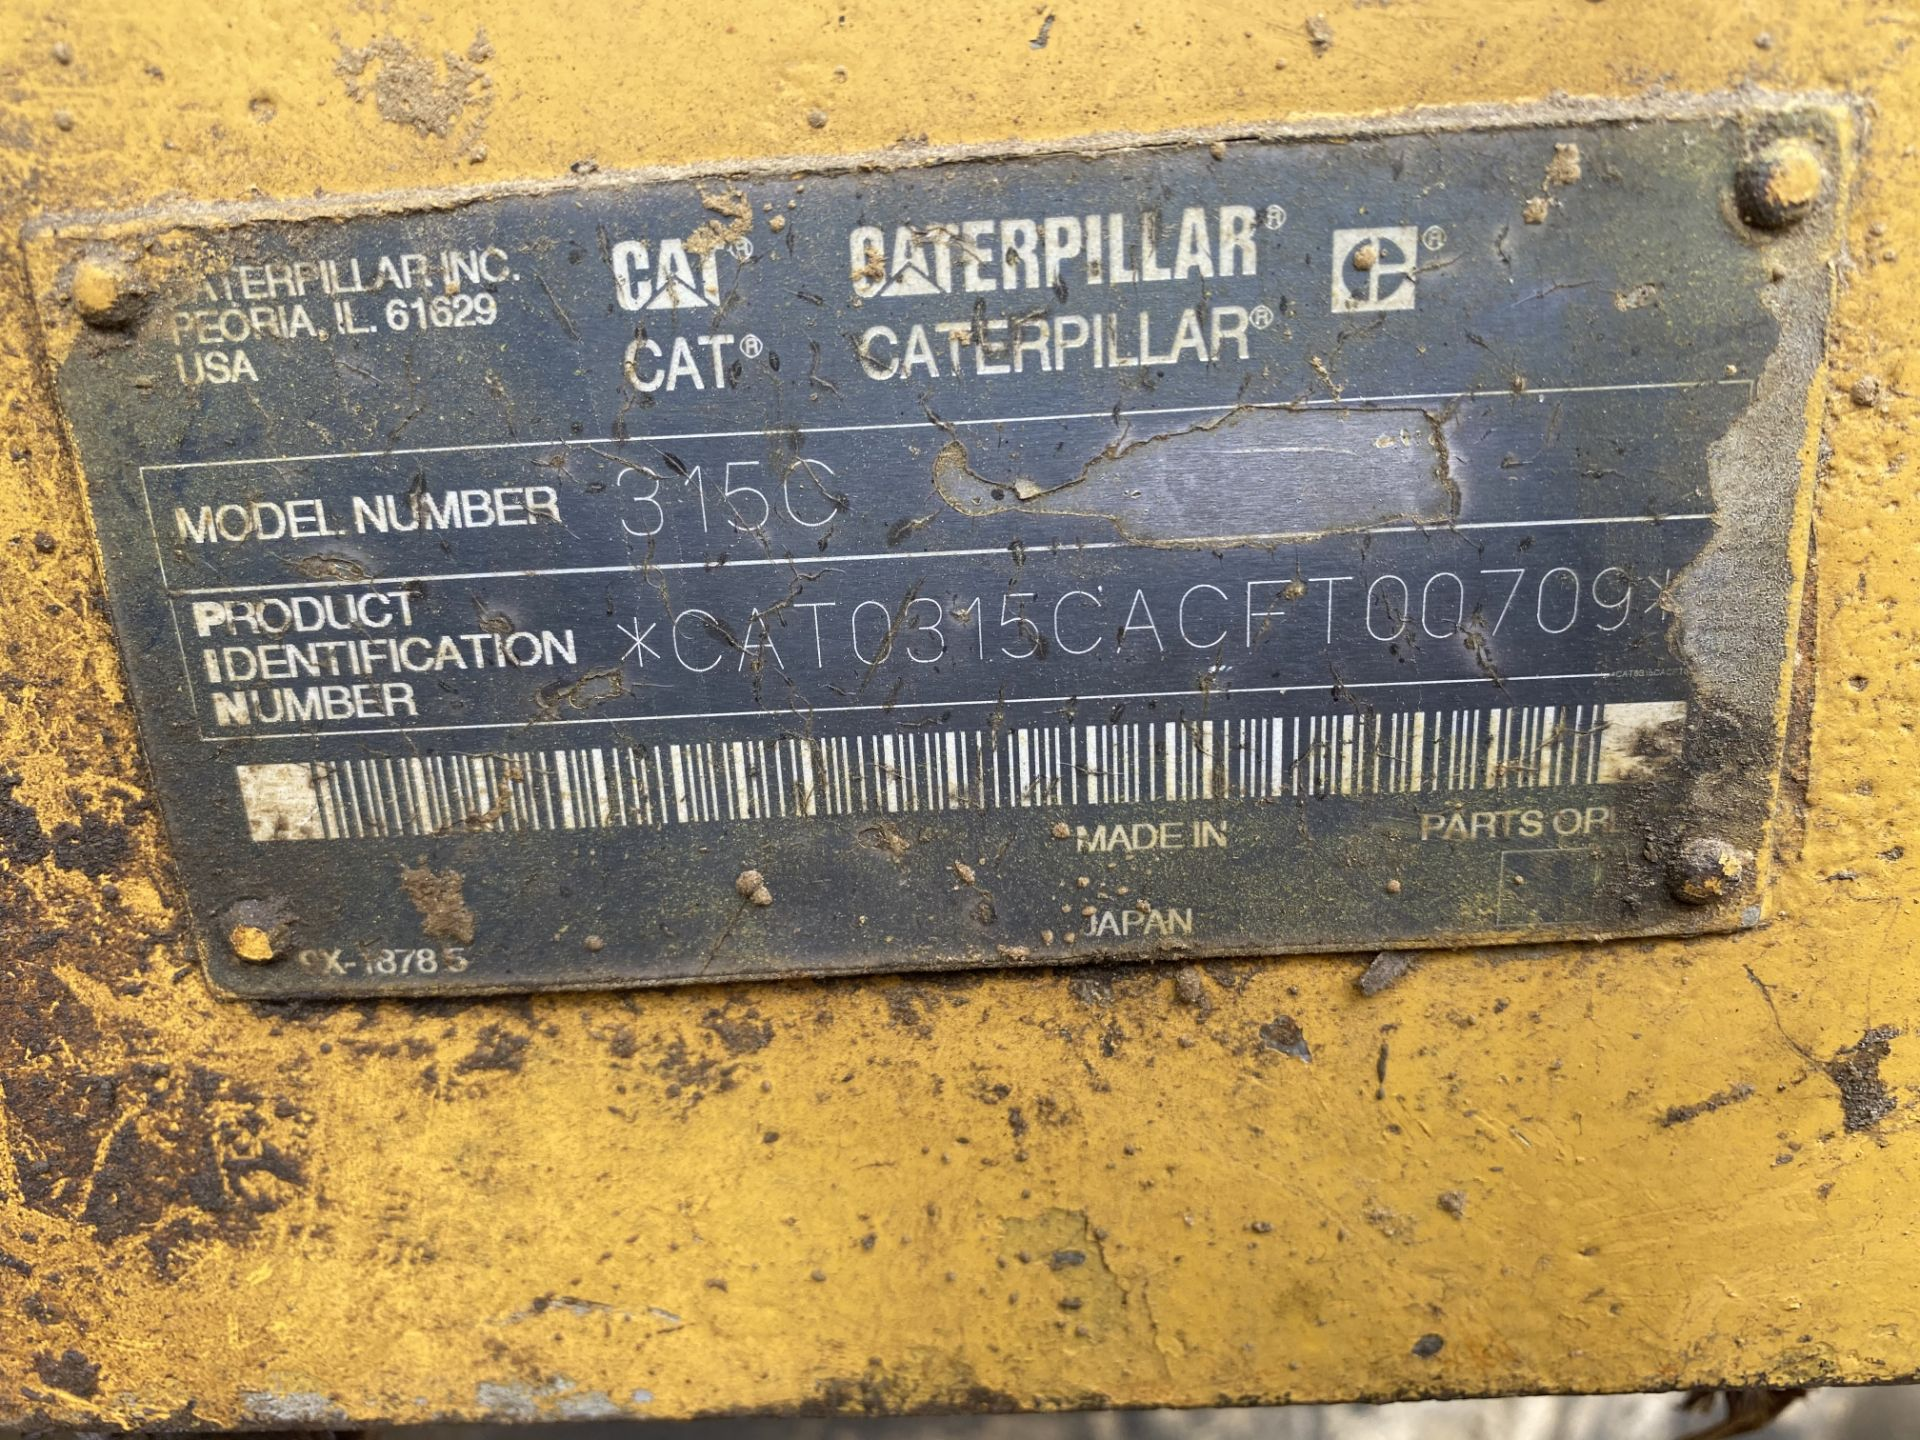 Caterpillar Excavator 315CL 1YD Bucket Stationary w/Thumb, Hrs: 8,003, 3YR Old Swing Motor Bushings, - Image 7 of 10